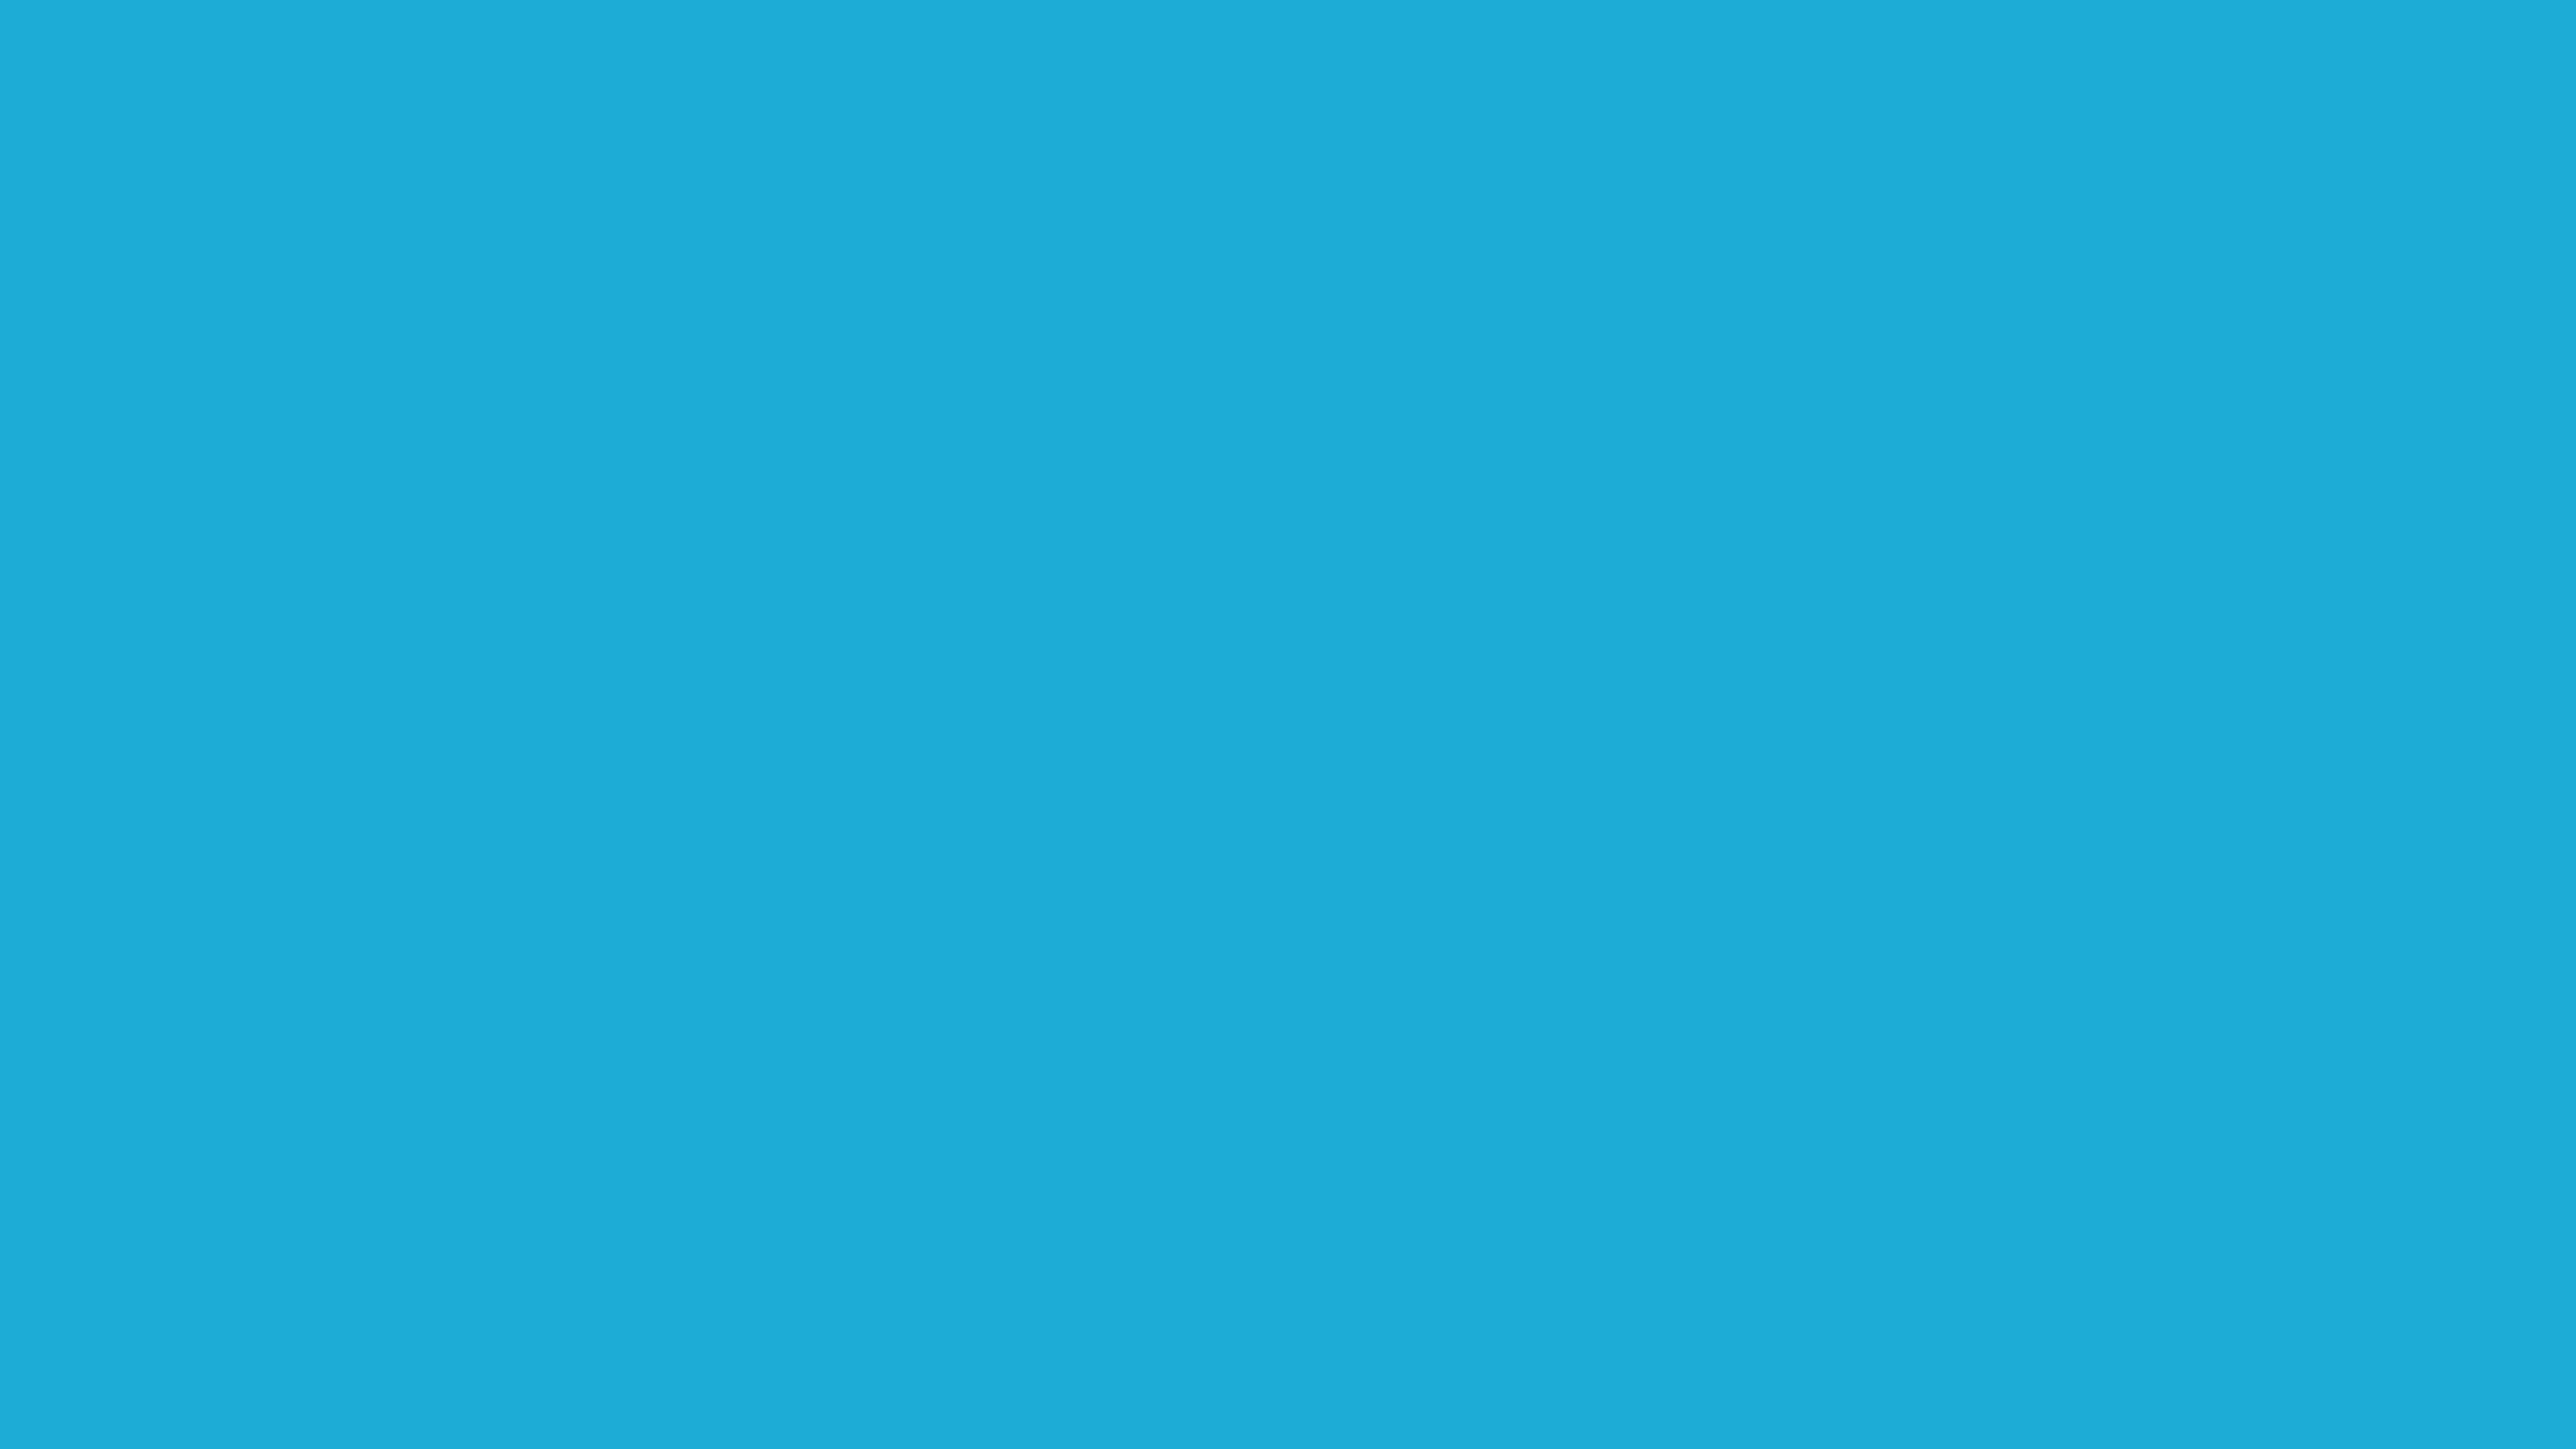 3840x2160 Bright Cerulean Solid Color Background